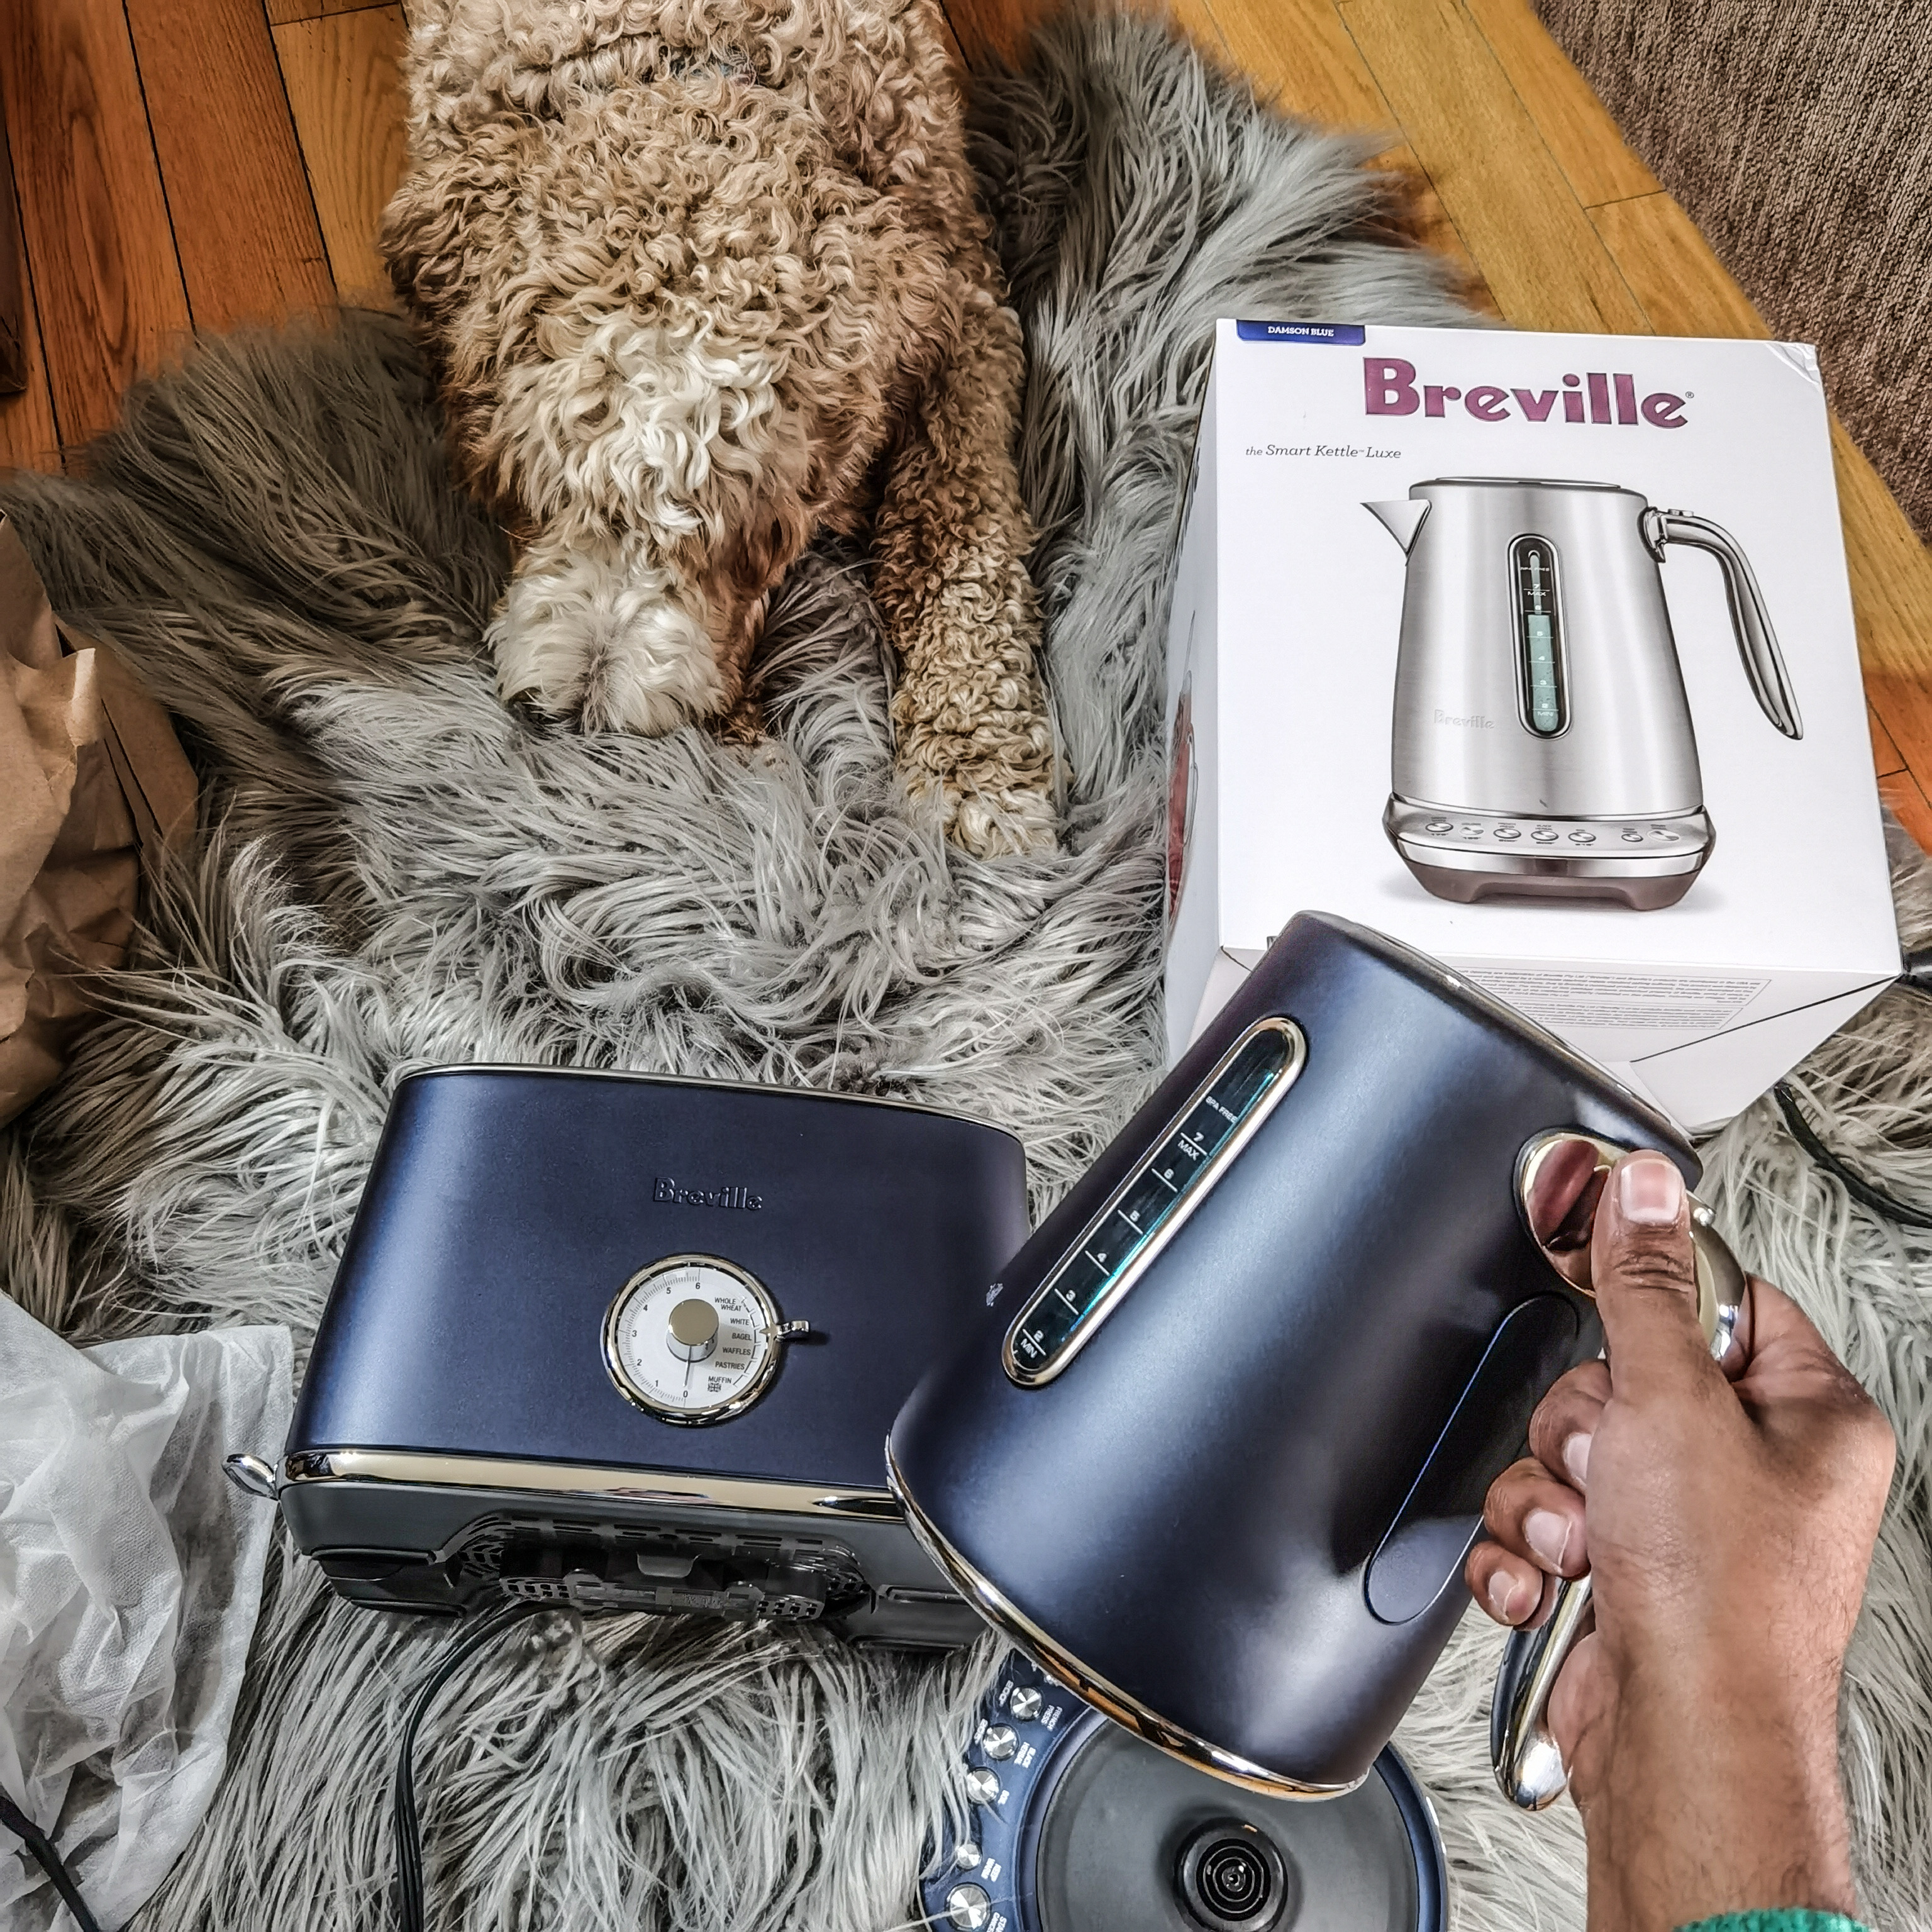 Breville Canada - Damson Blue Luxe Collection - Toast Select Luxe - Smart Kettle Luxe - Unboxing